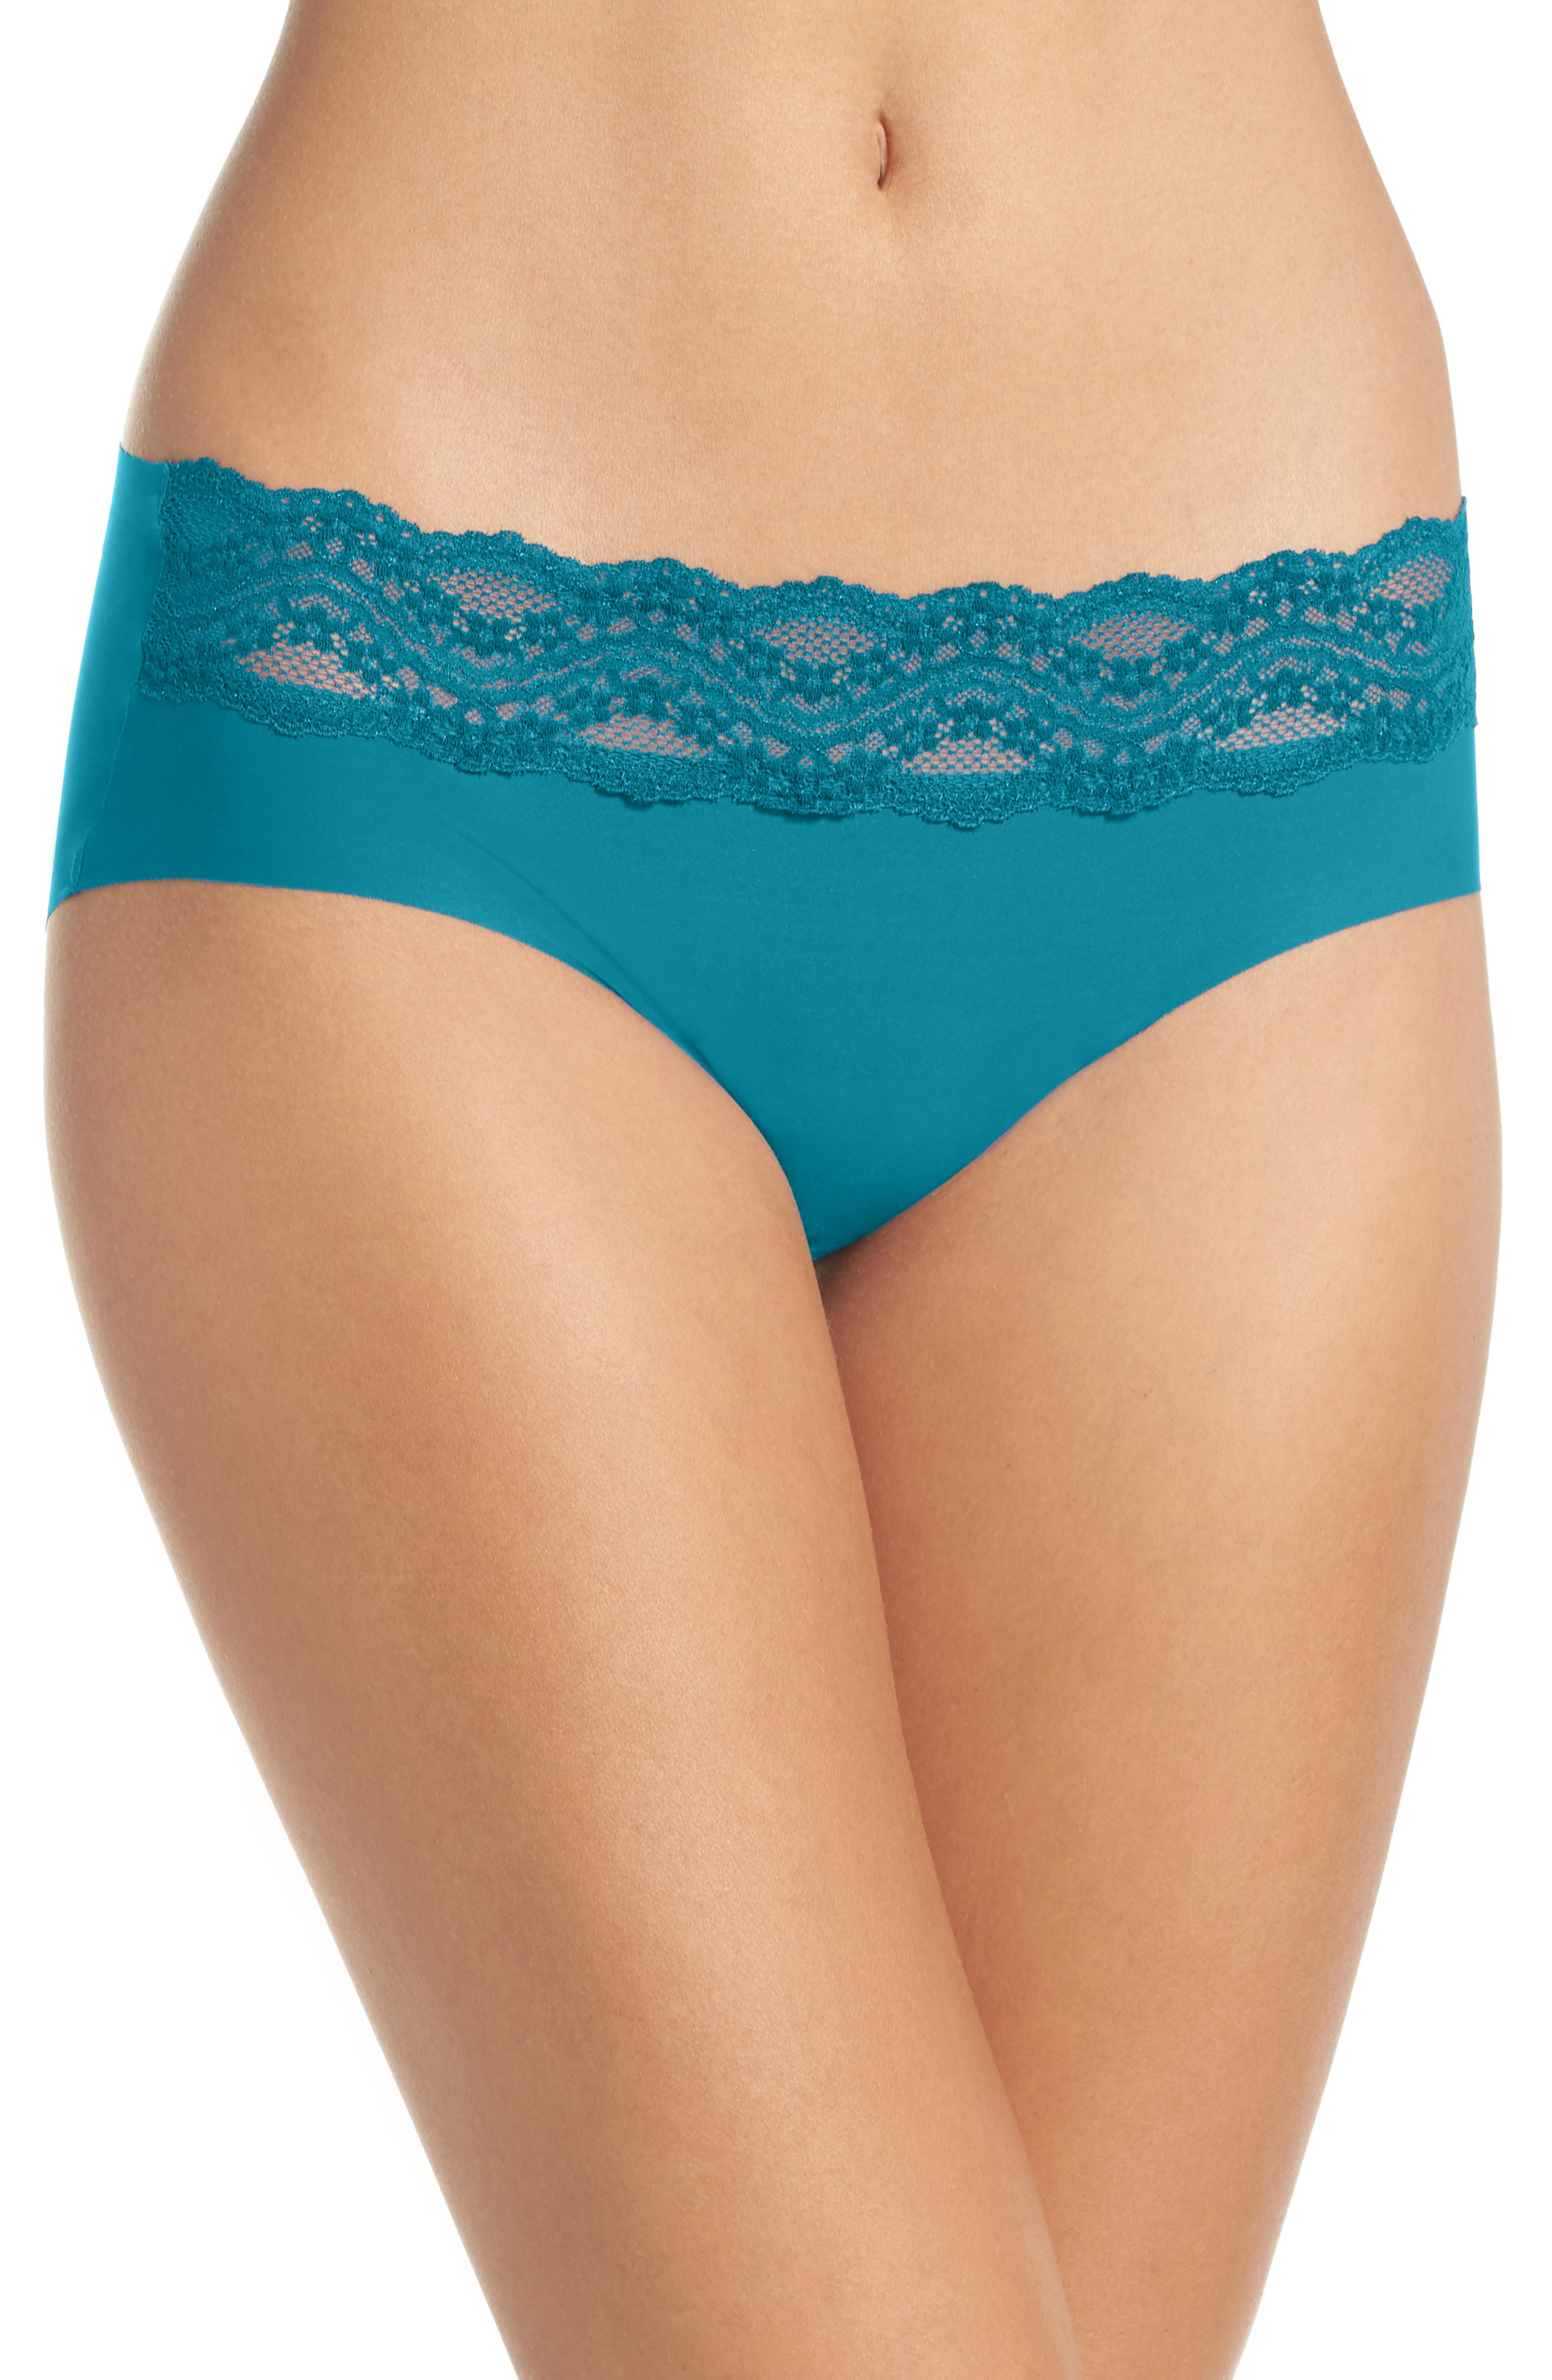 b.bare Hipster Panties,                         Main,                         color, 447